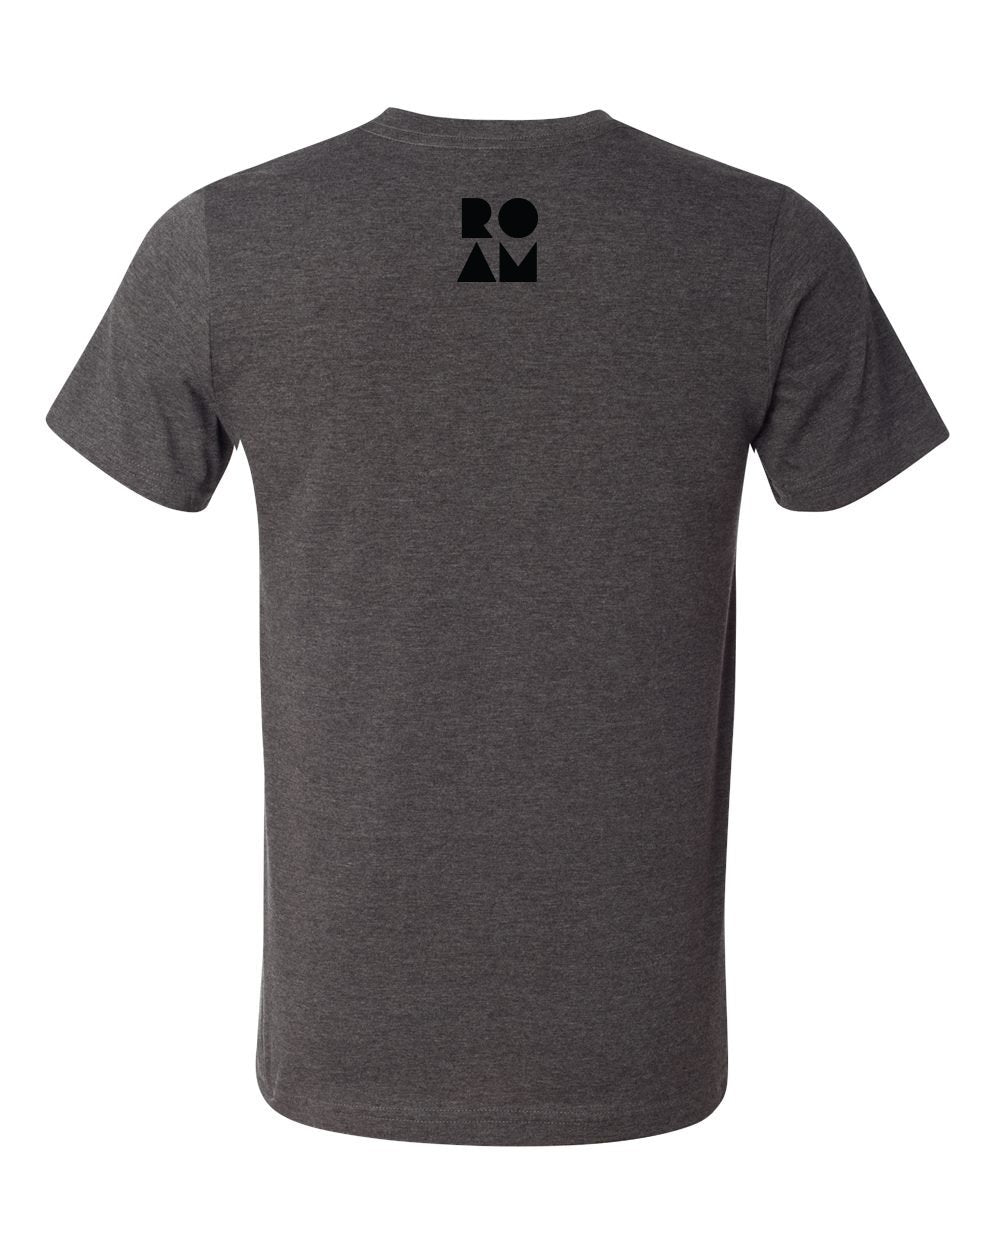 Roam North Star - Heather Dark Grey - Back